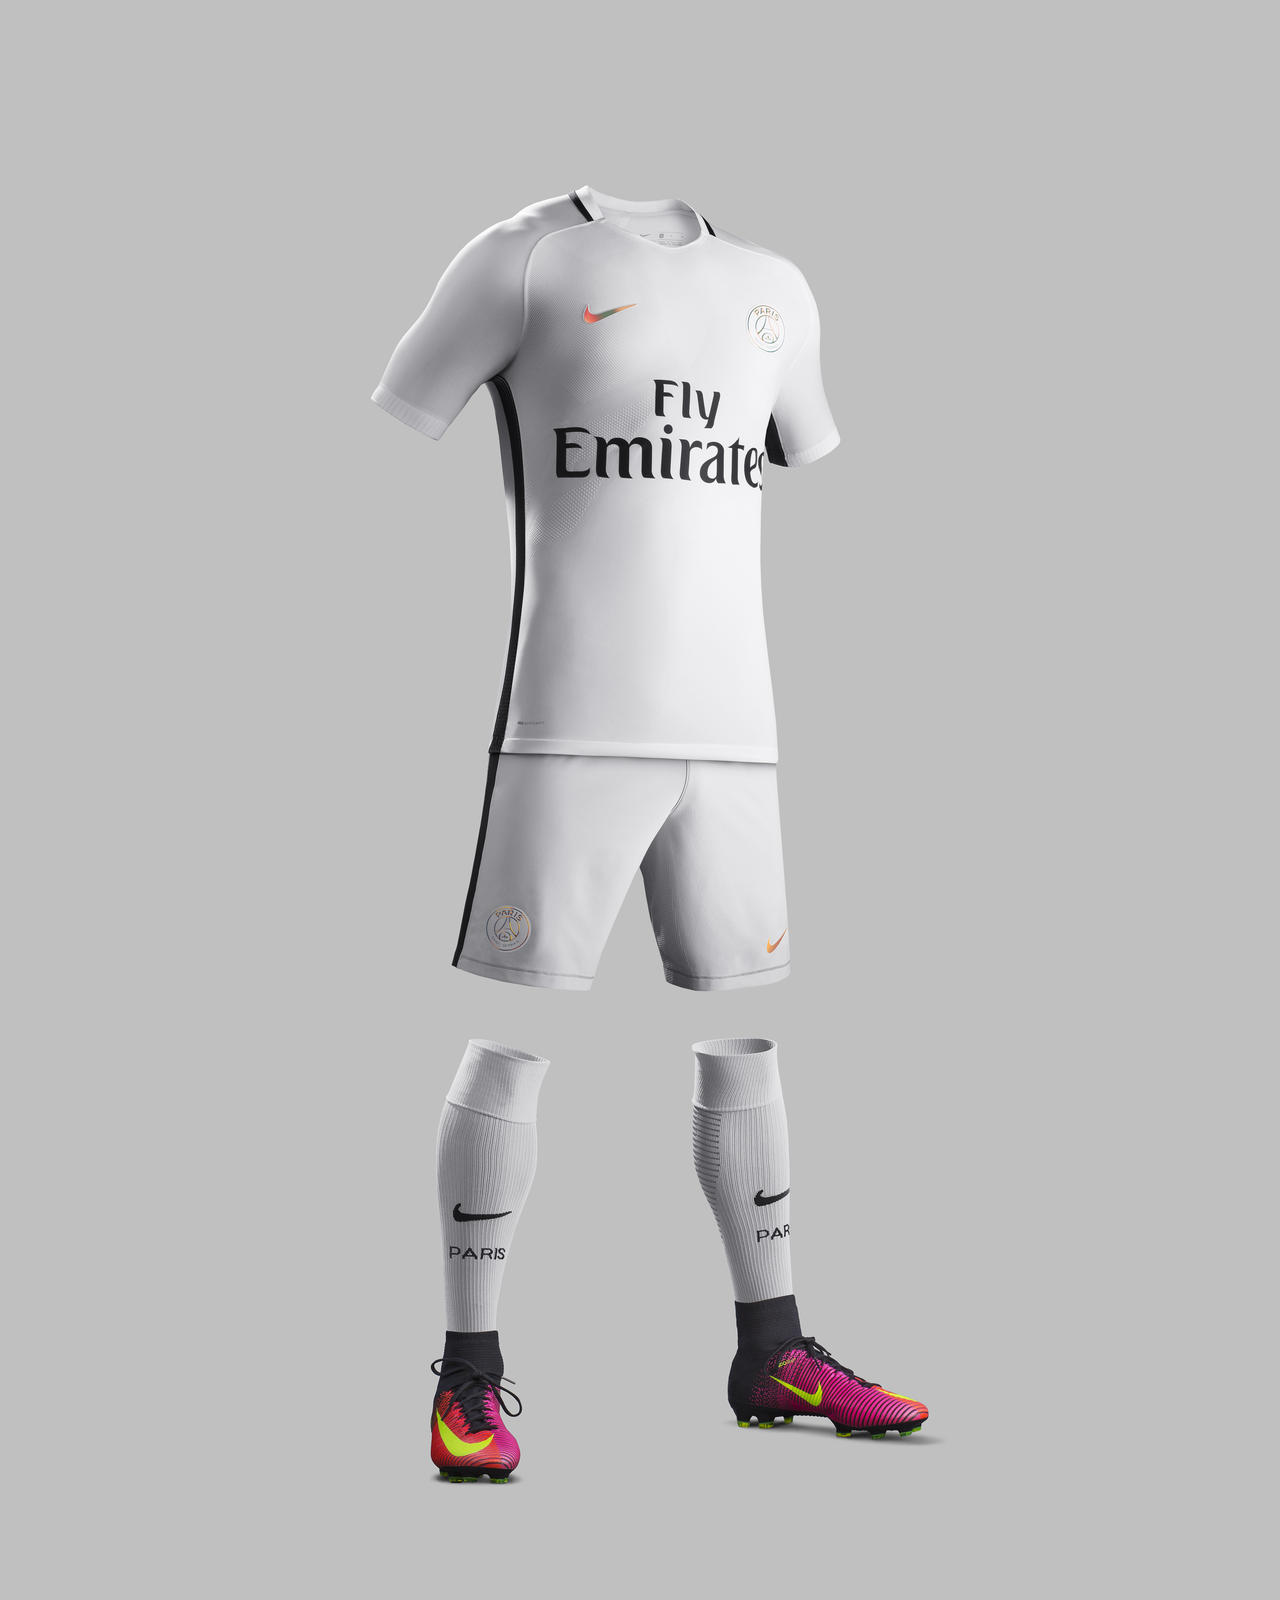 Fa16 CK Comms 3RD Full Body Match PSG R. PARIS Saint-Germain 3rd kit  2016-2017 f485e06e0